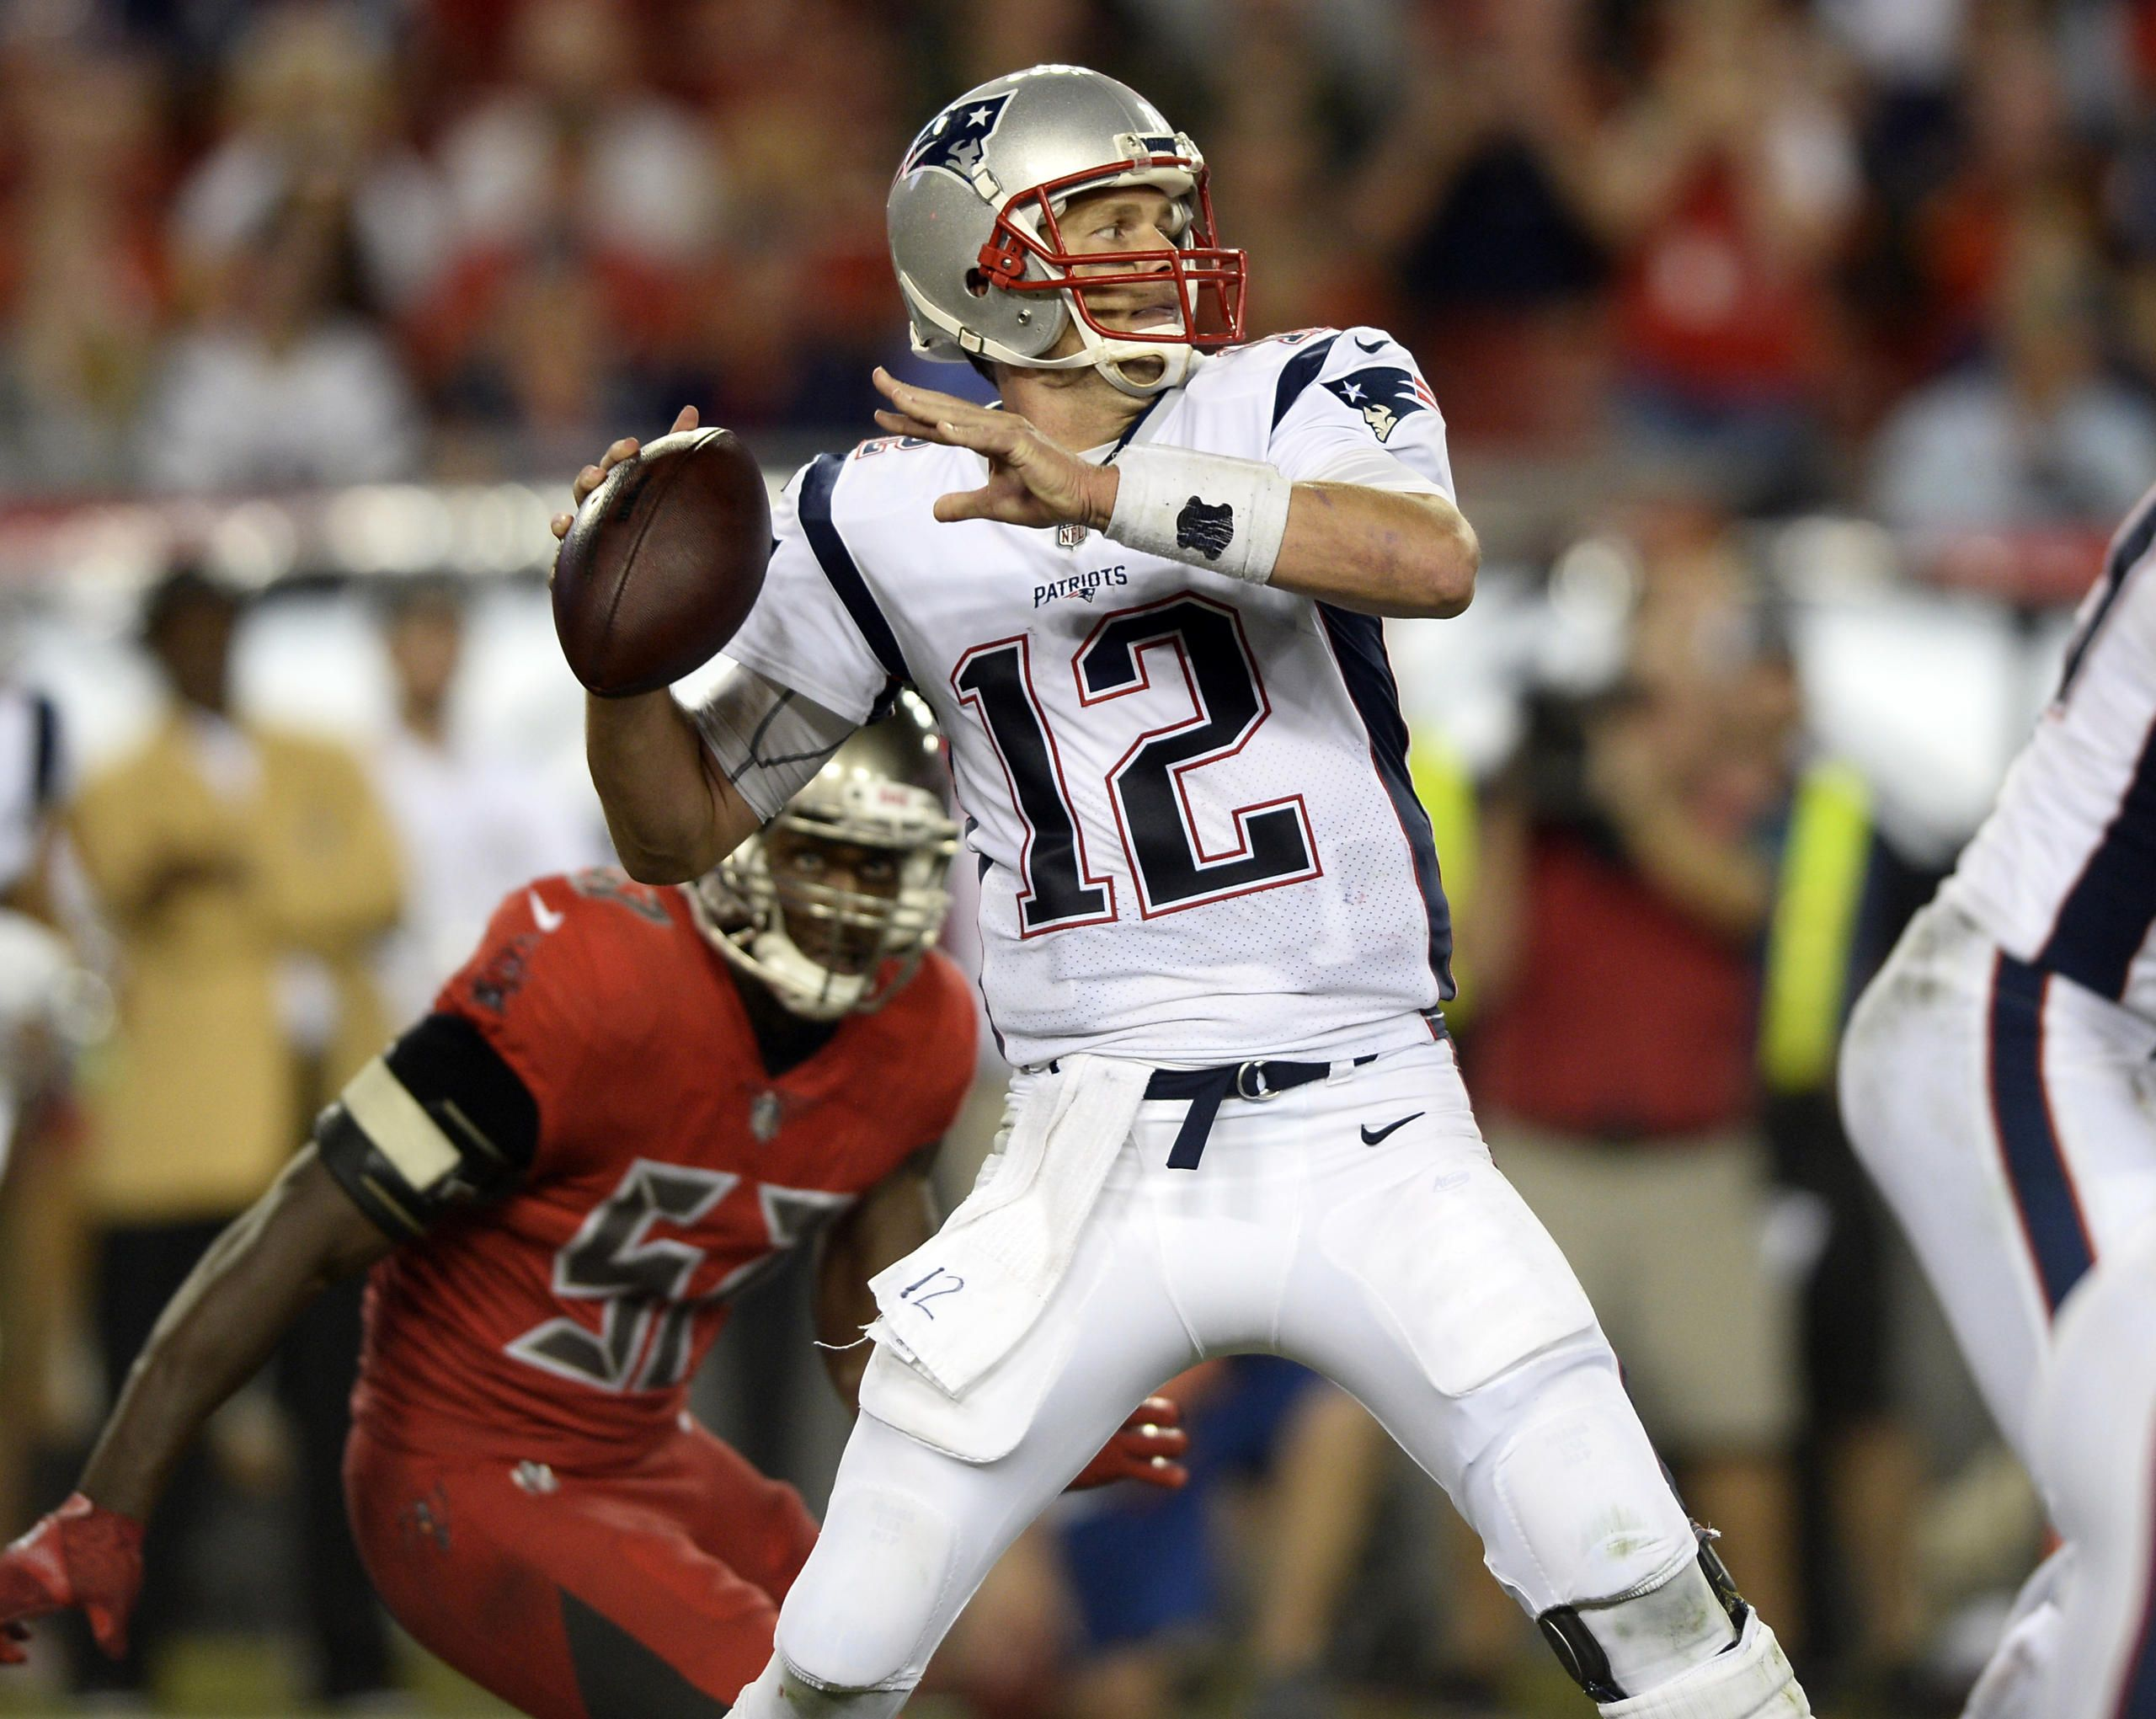 Patriots vs. Buccaneers Week 5 (With images) Patriots